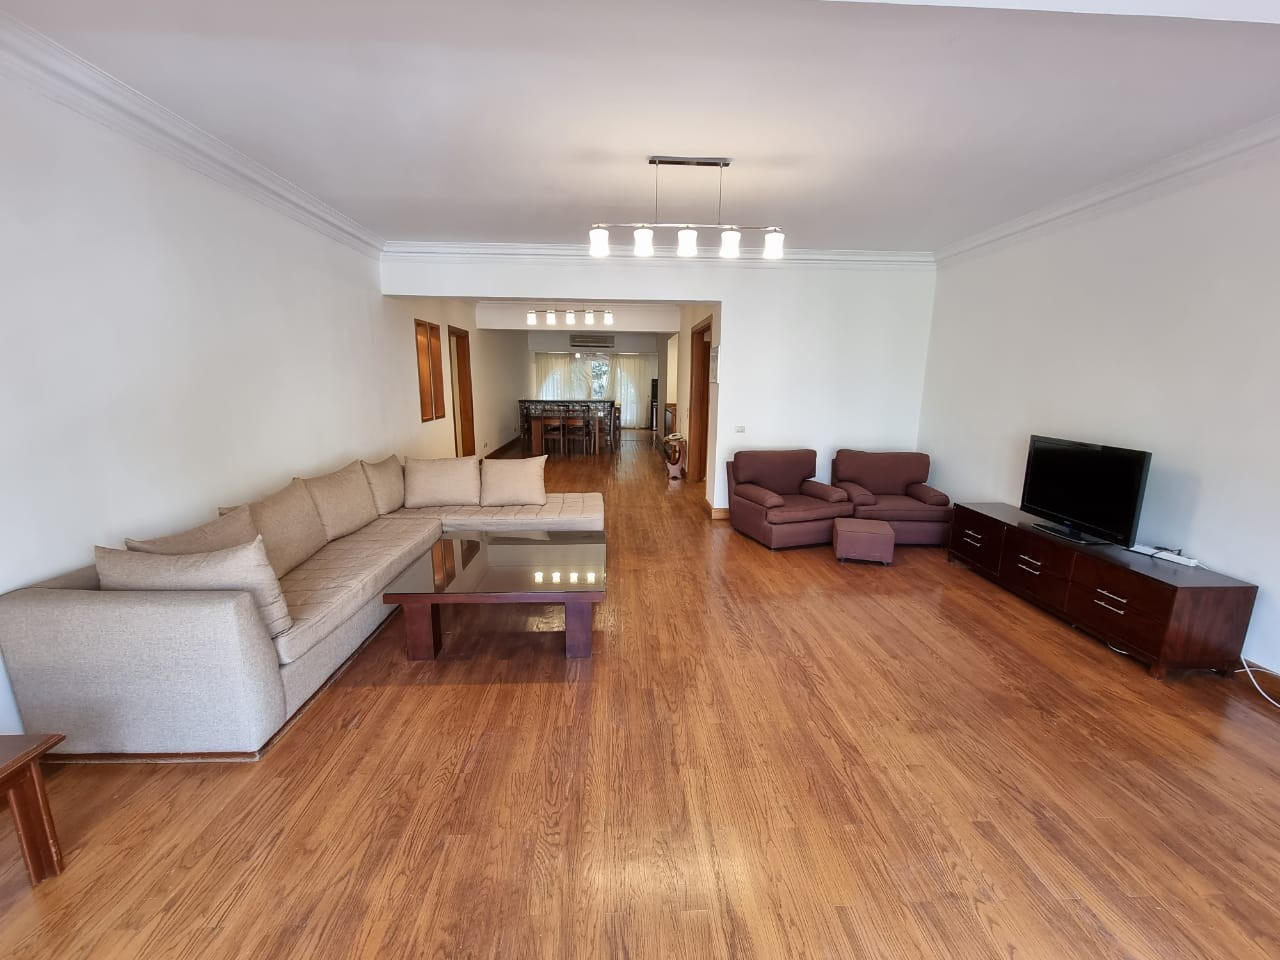 Tremendous Modern Furnished Apartment For Rent In Sarayat El Maadi - 4870 Featured Image